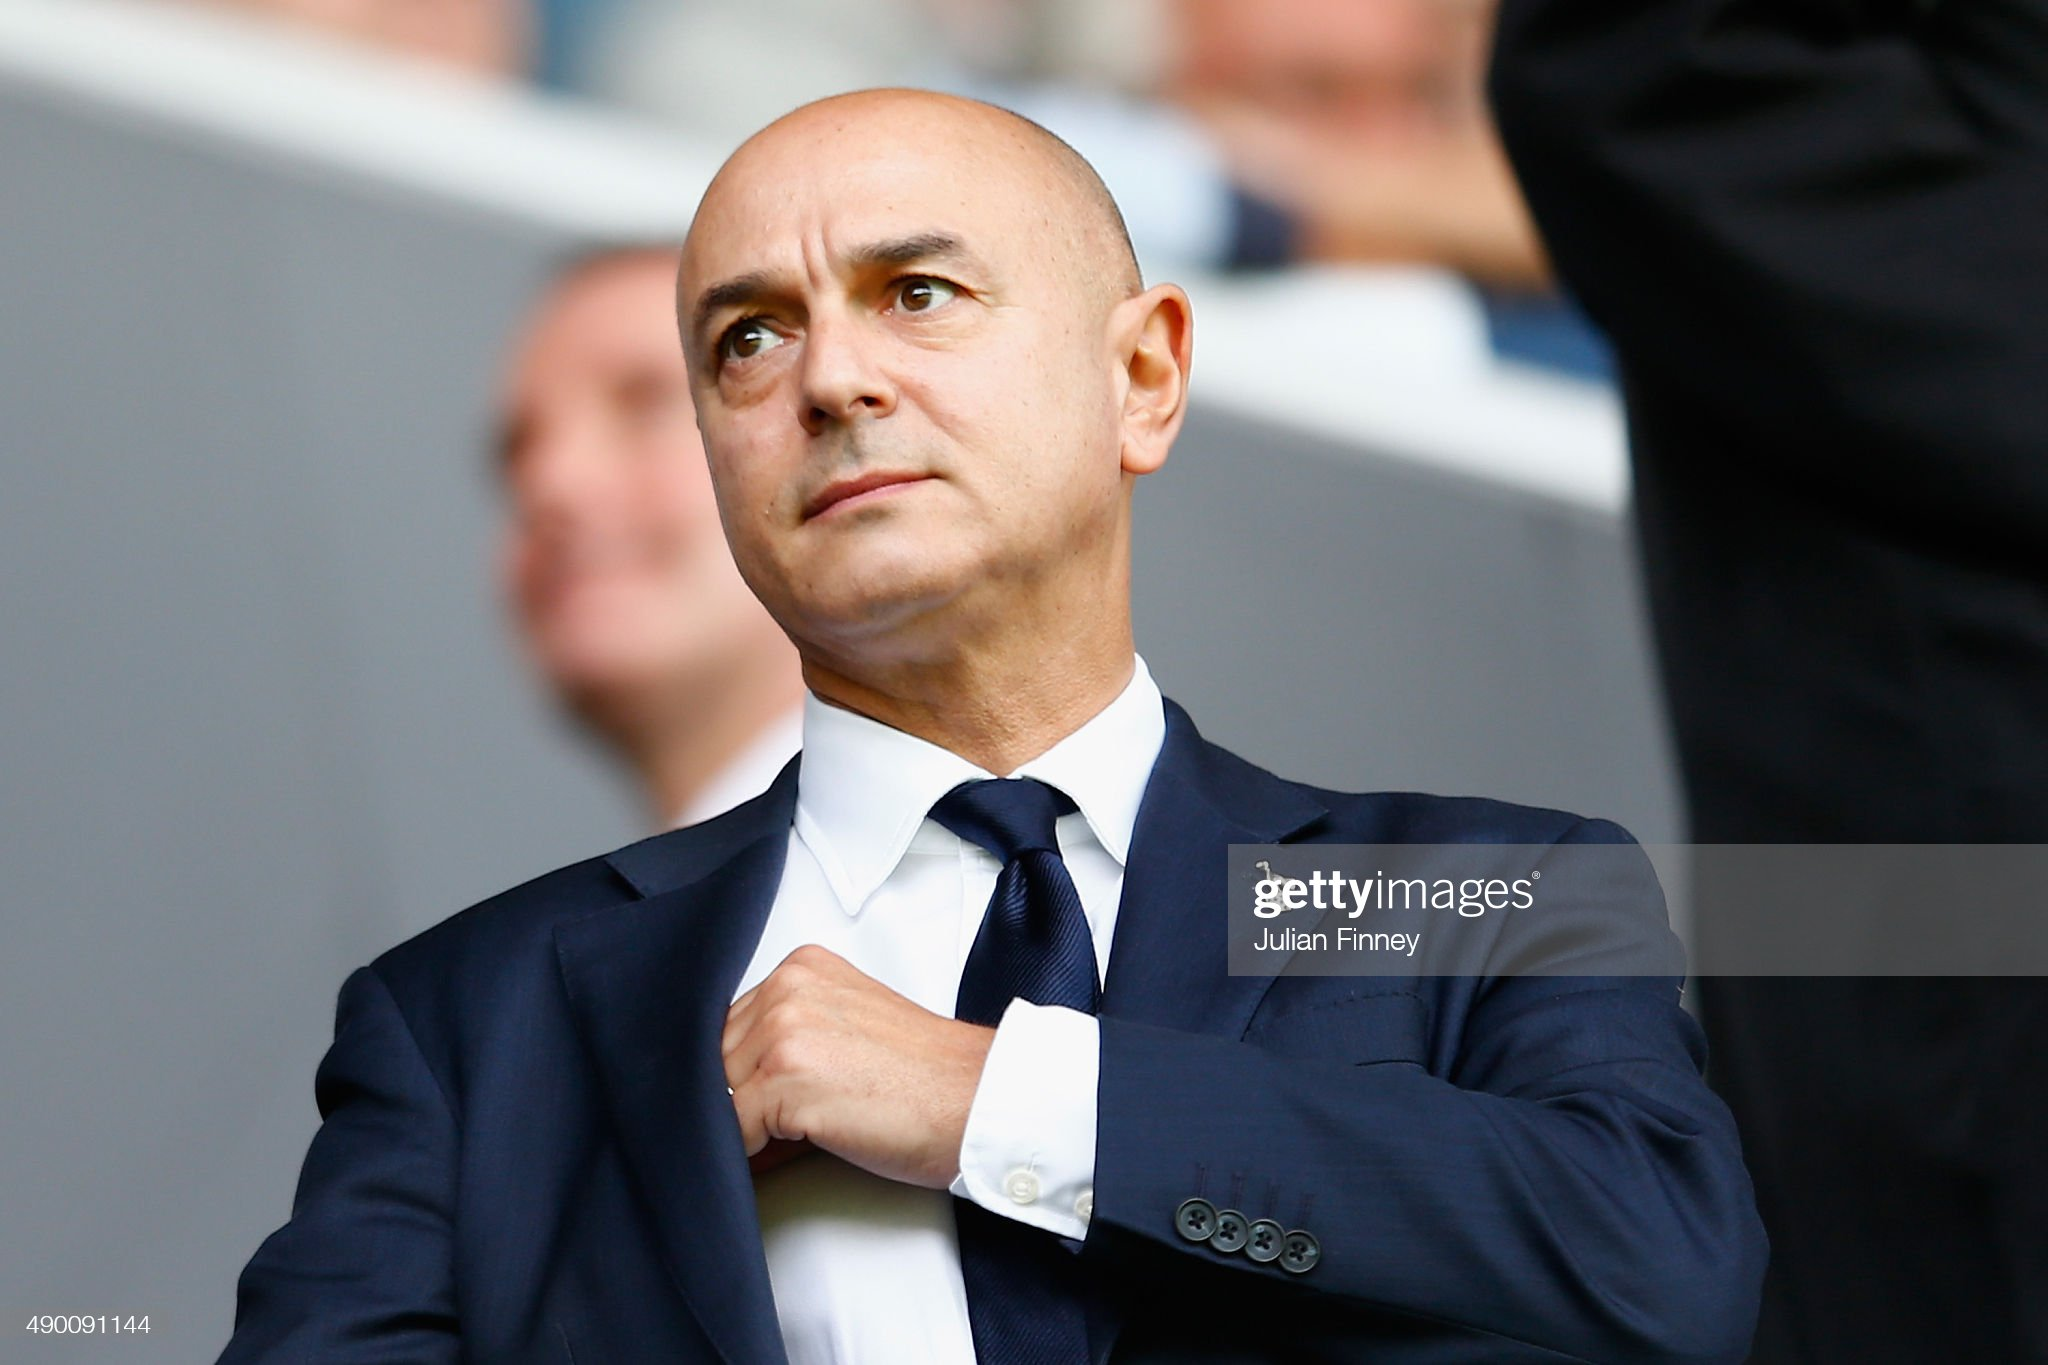 https://media.gettyimages.com/photos/tottenham-hotspur-chairman-daniel-levy-looks-on-prior-to-the-barclays-picture-id490091144?s=2048x2048